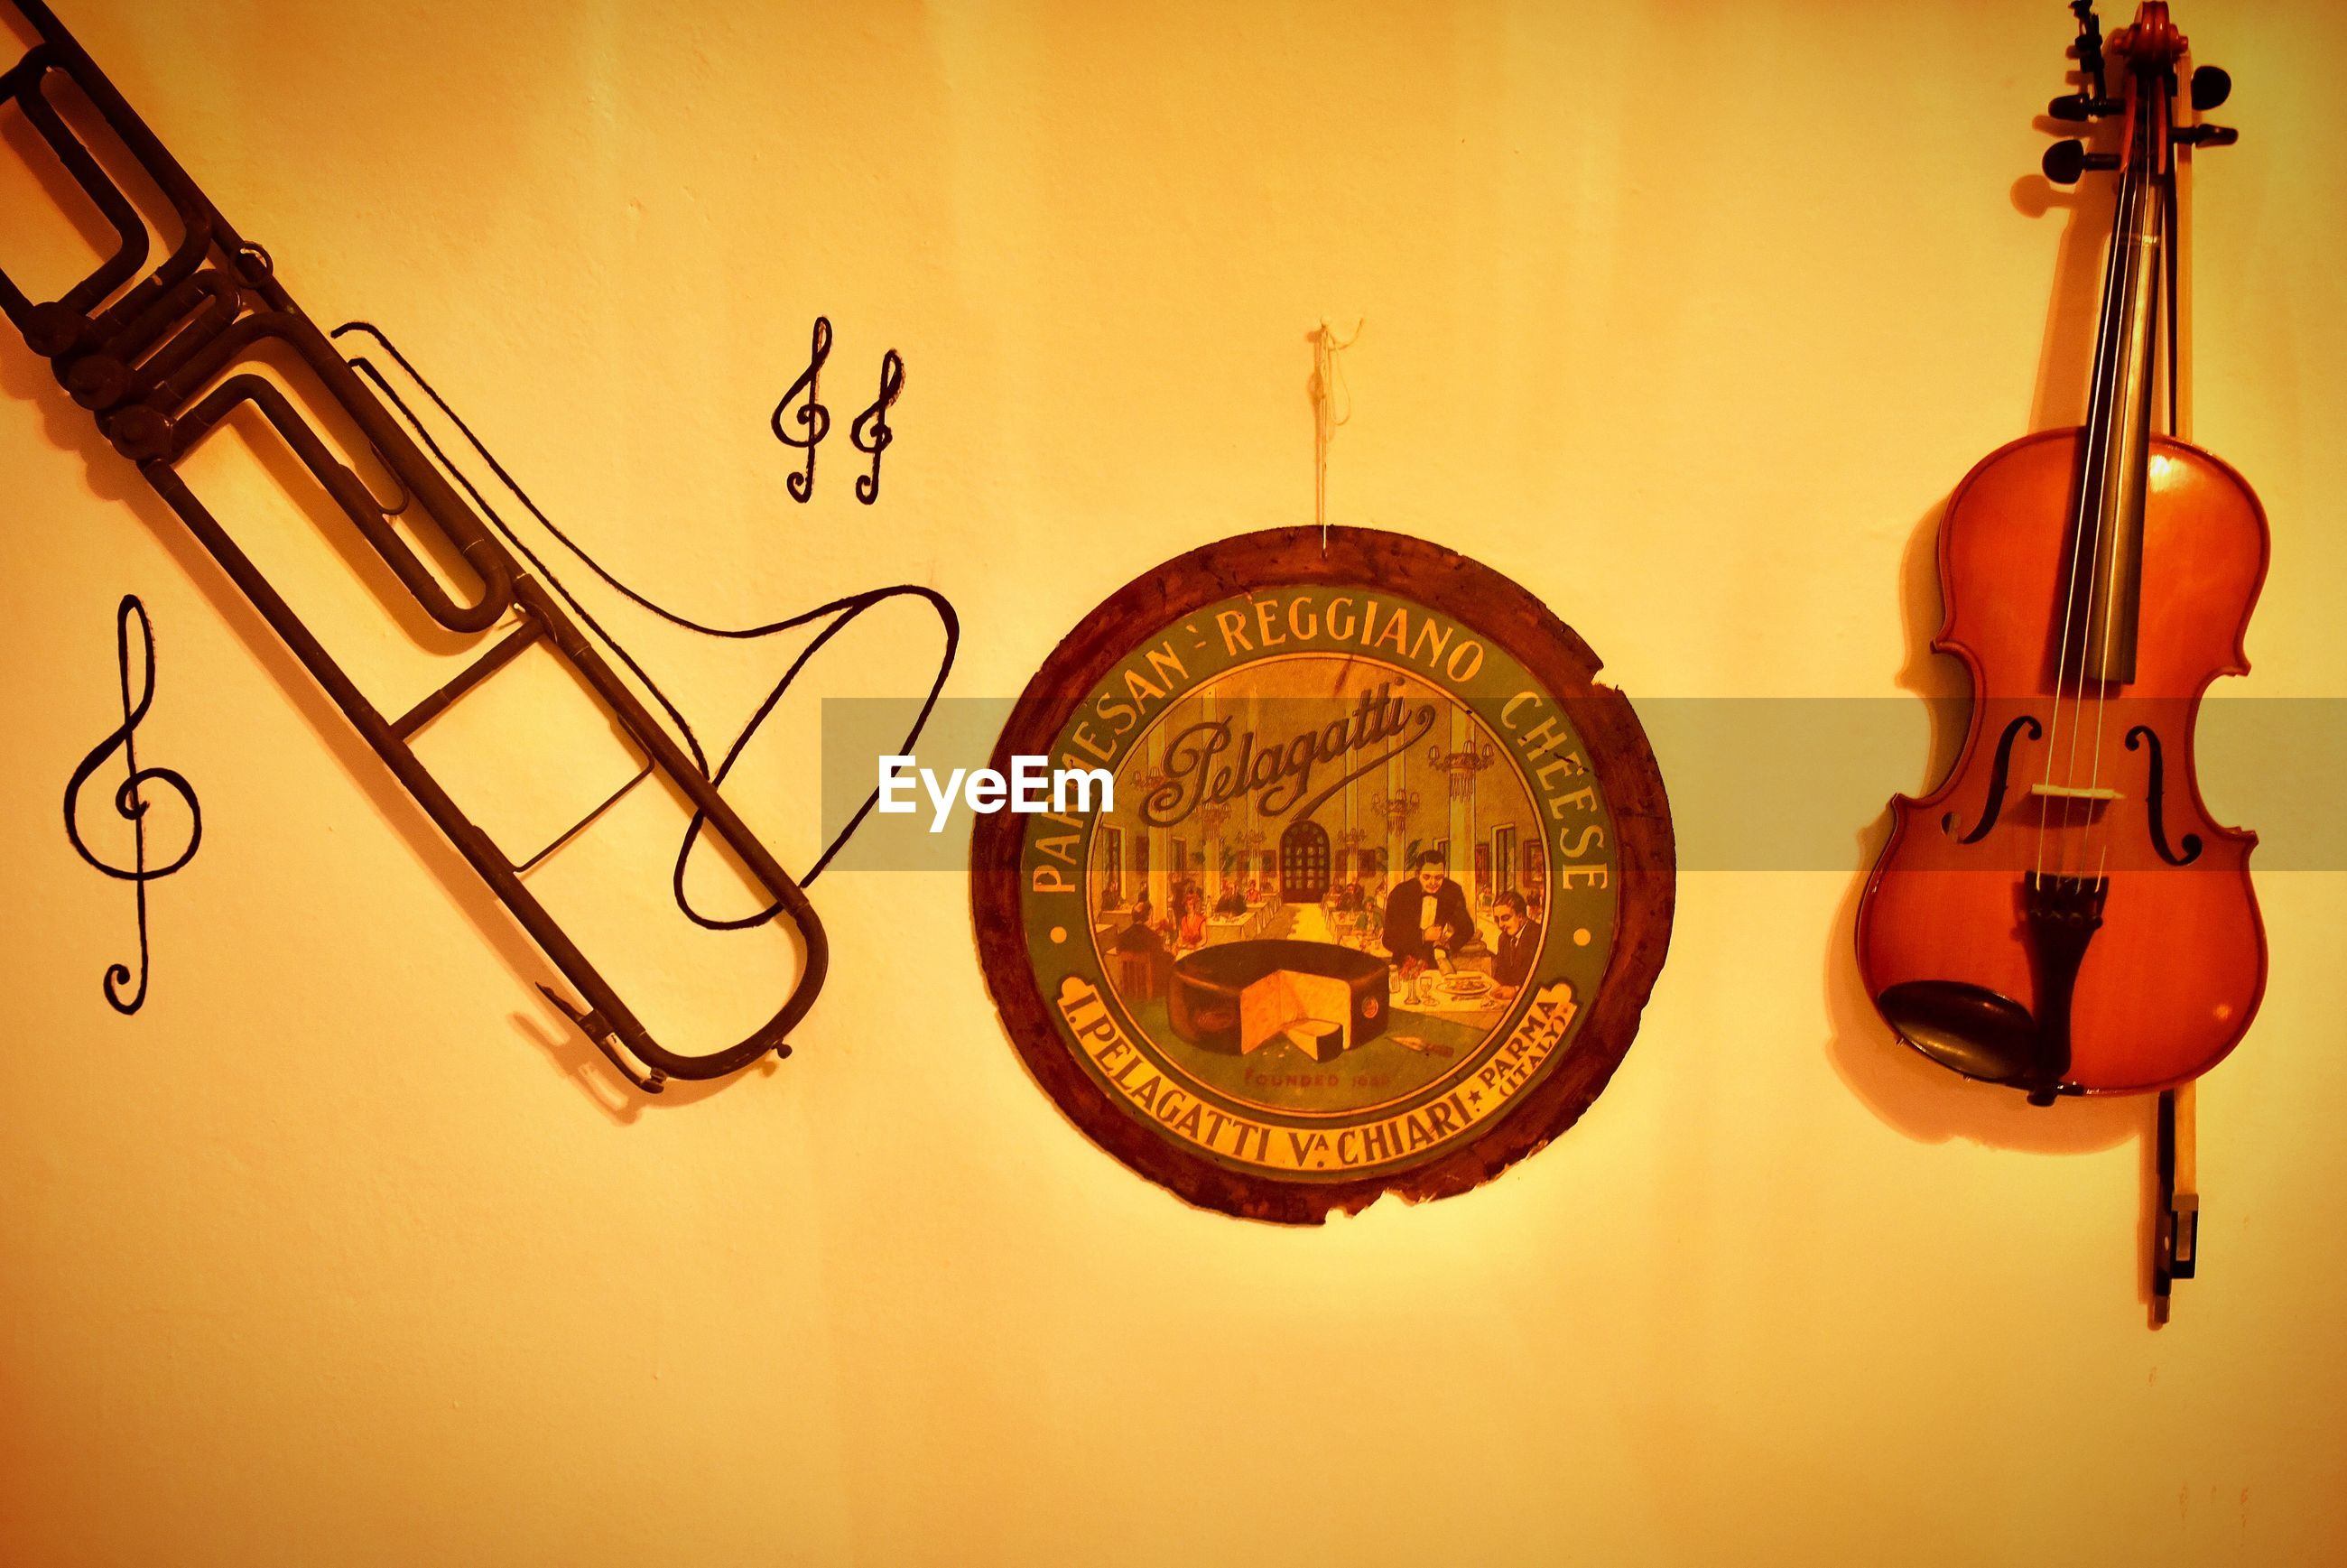 music, musical instrument, musical equipment, string instrument, arts culture and entertainment, indoors, wall - building feature, violin, hanging, no people, string, musical instrument string, still life, close-up, wood - material, guitar, text, art and craft, studio shot, number